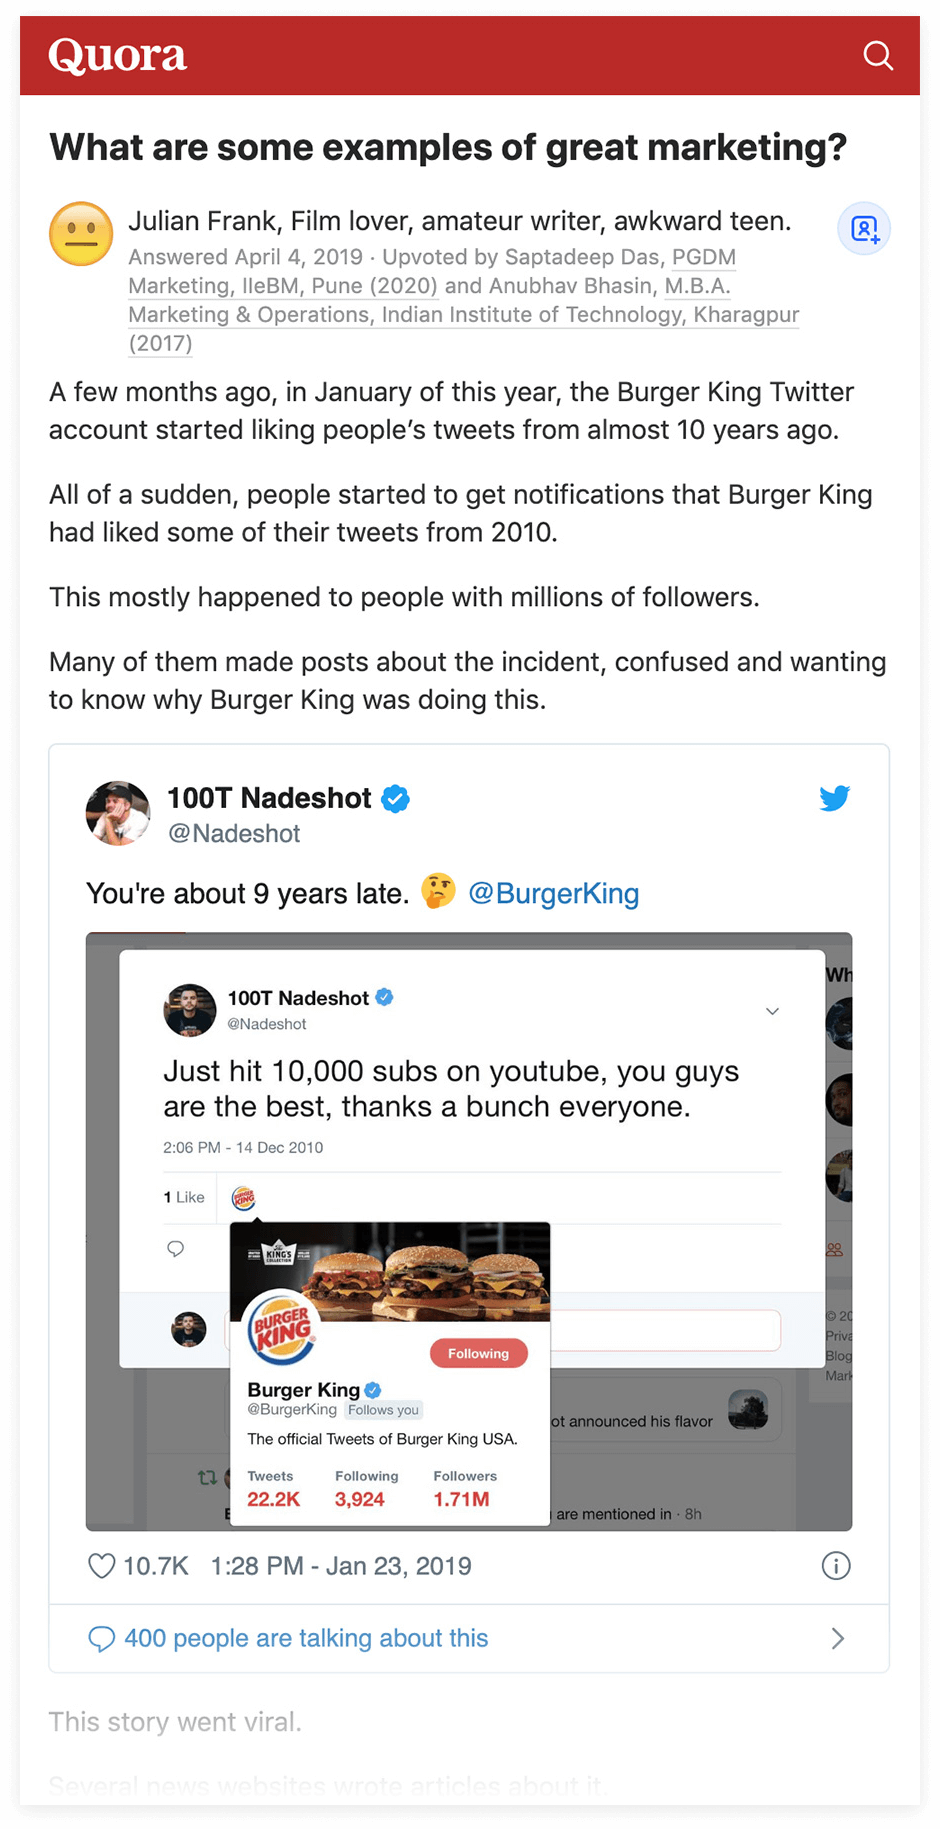 Quora - Burger King example